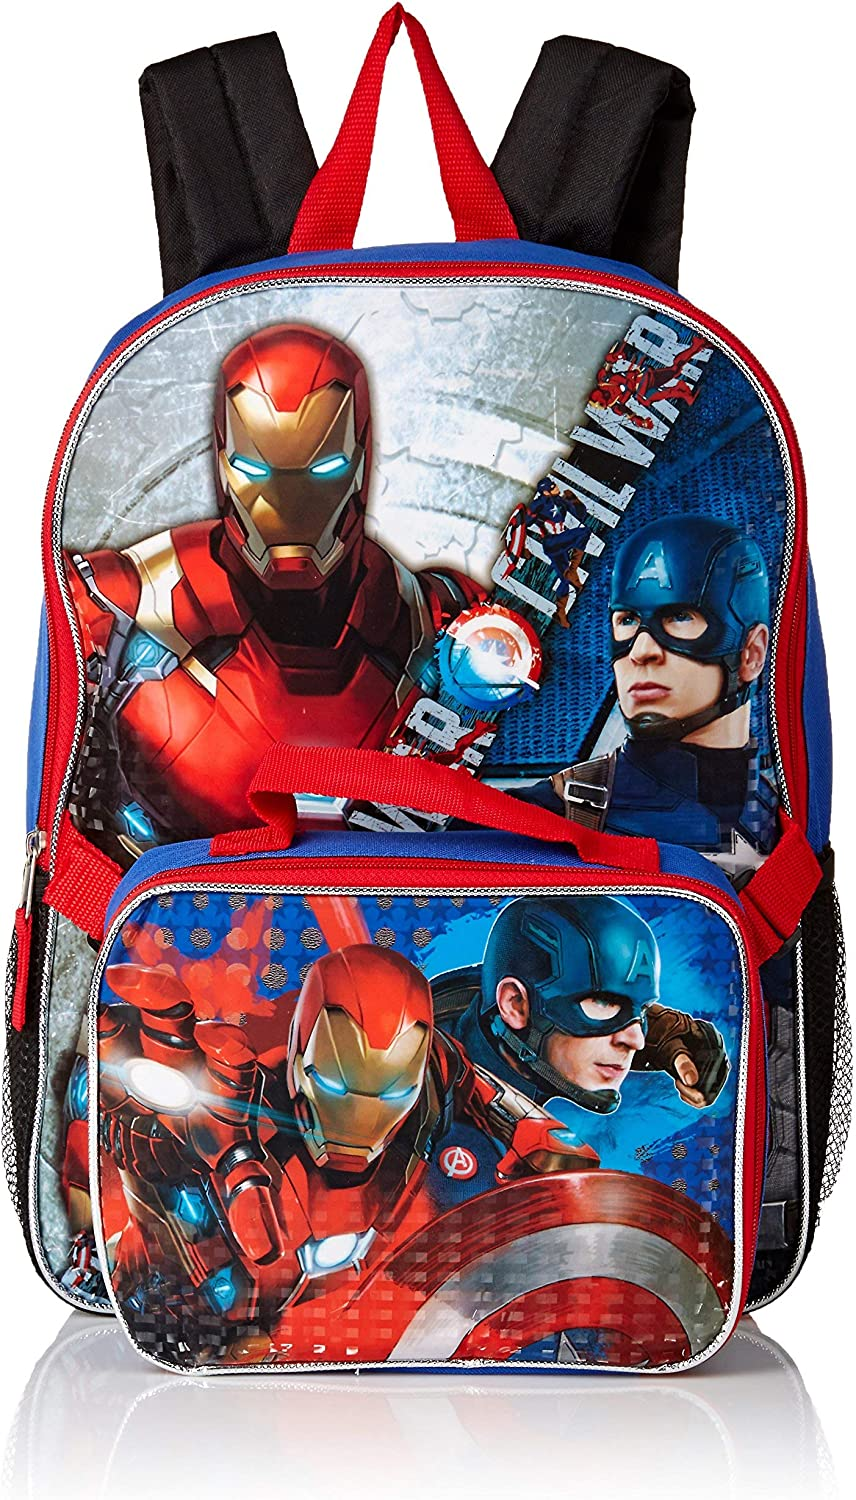 Marvel Avengers Backpack with Lunchbox 7 PC Set Avengers School Supplies